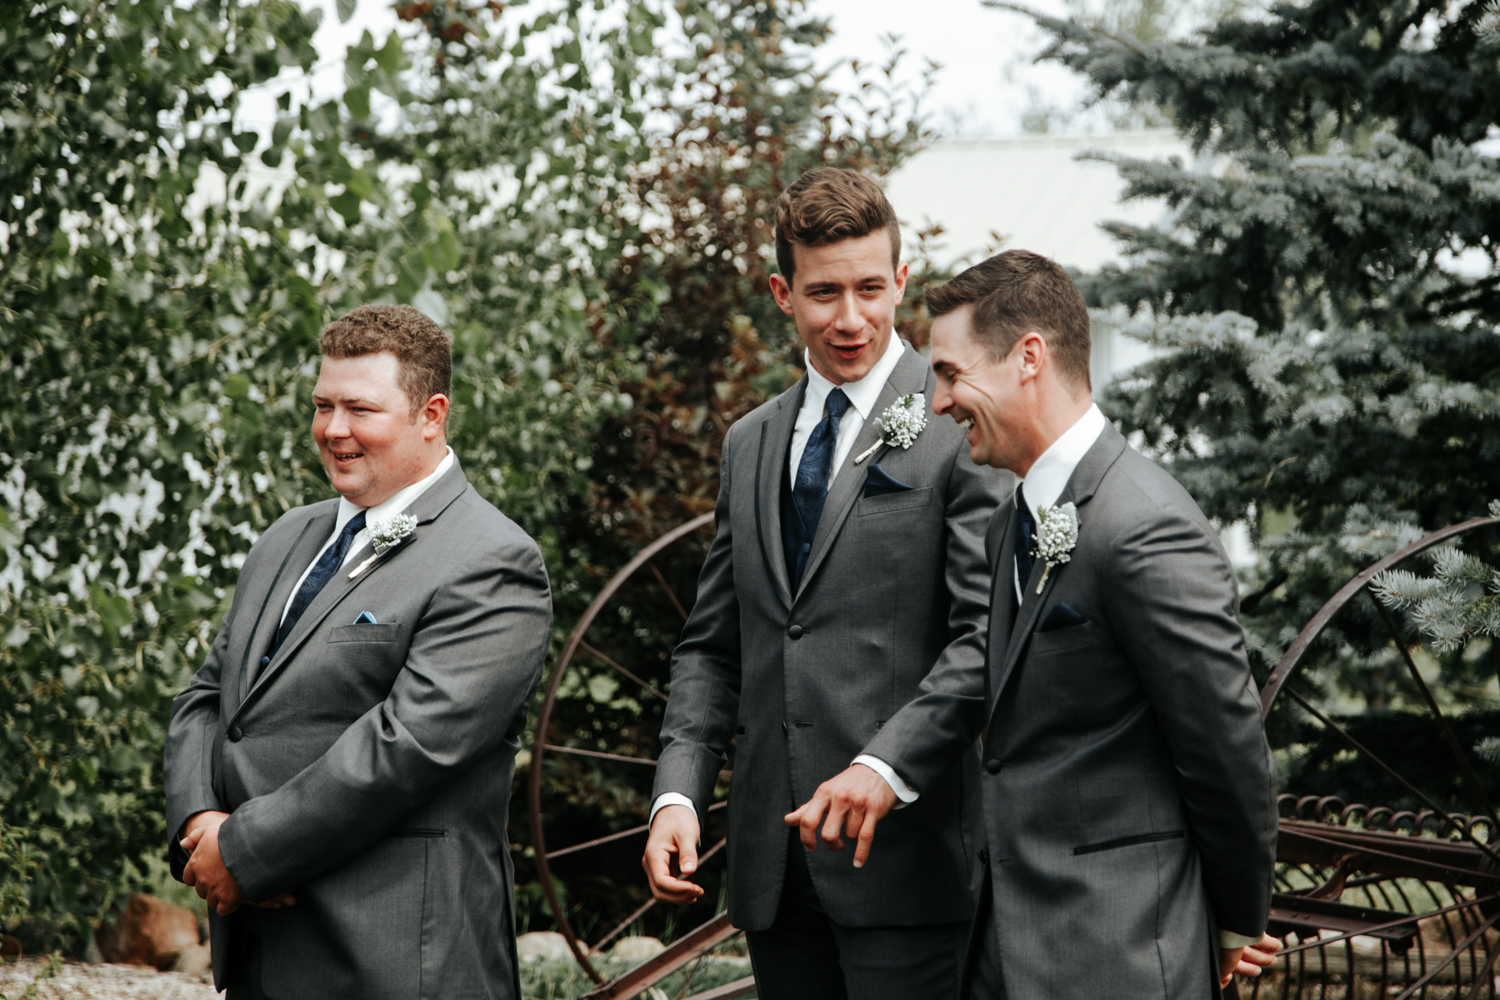 lethbridge-photographer-readymade-community-centre-wedding-coaldale-bailey-joel-picture-image-photo-23.jpg